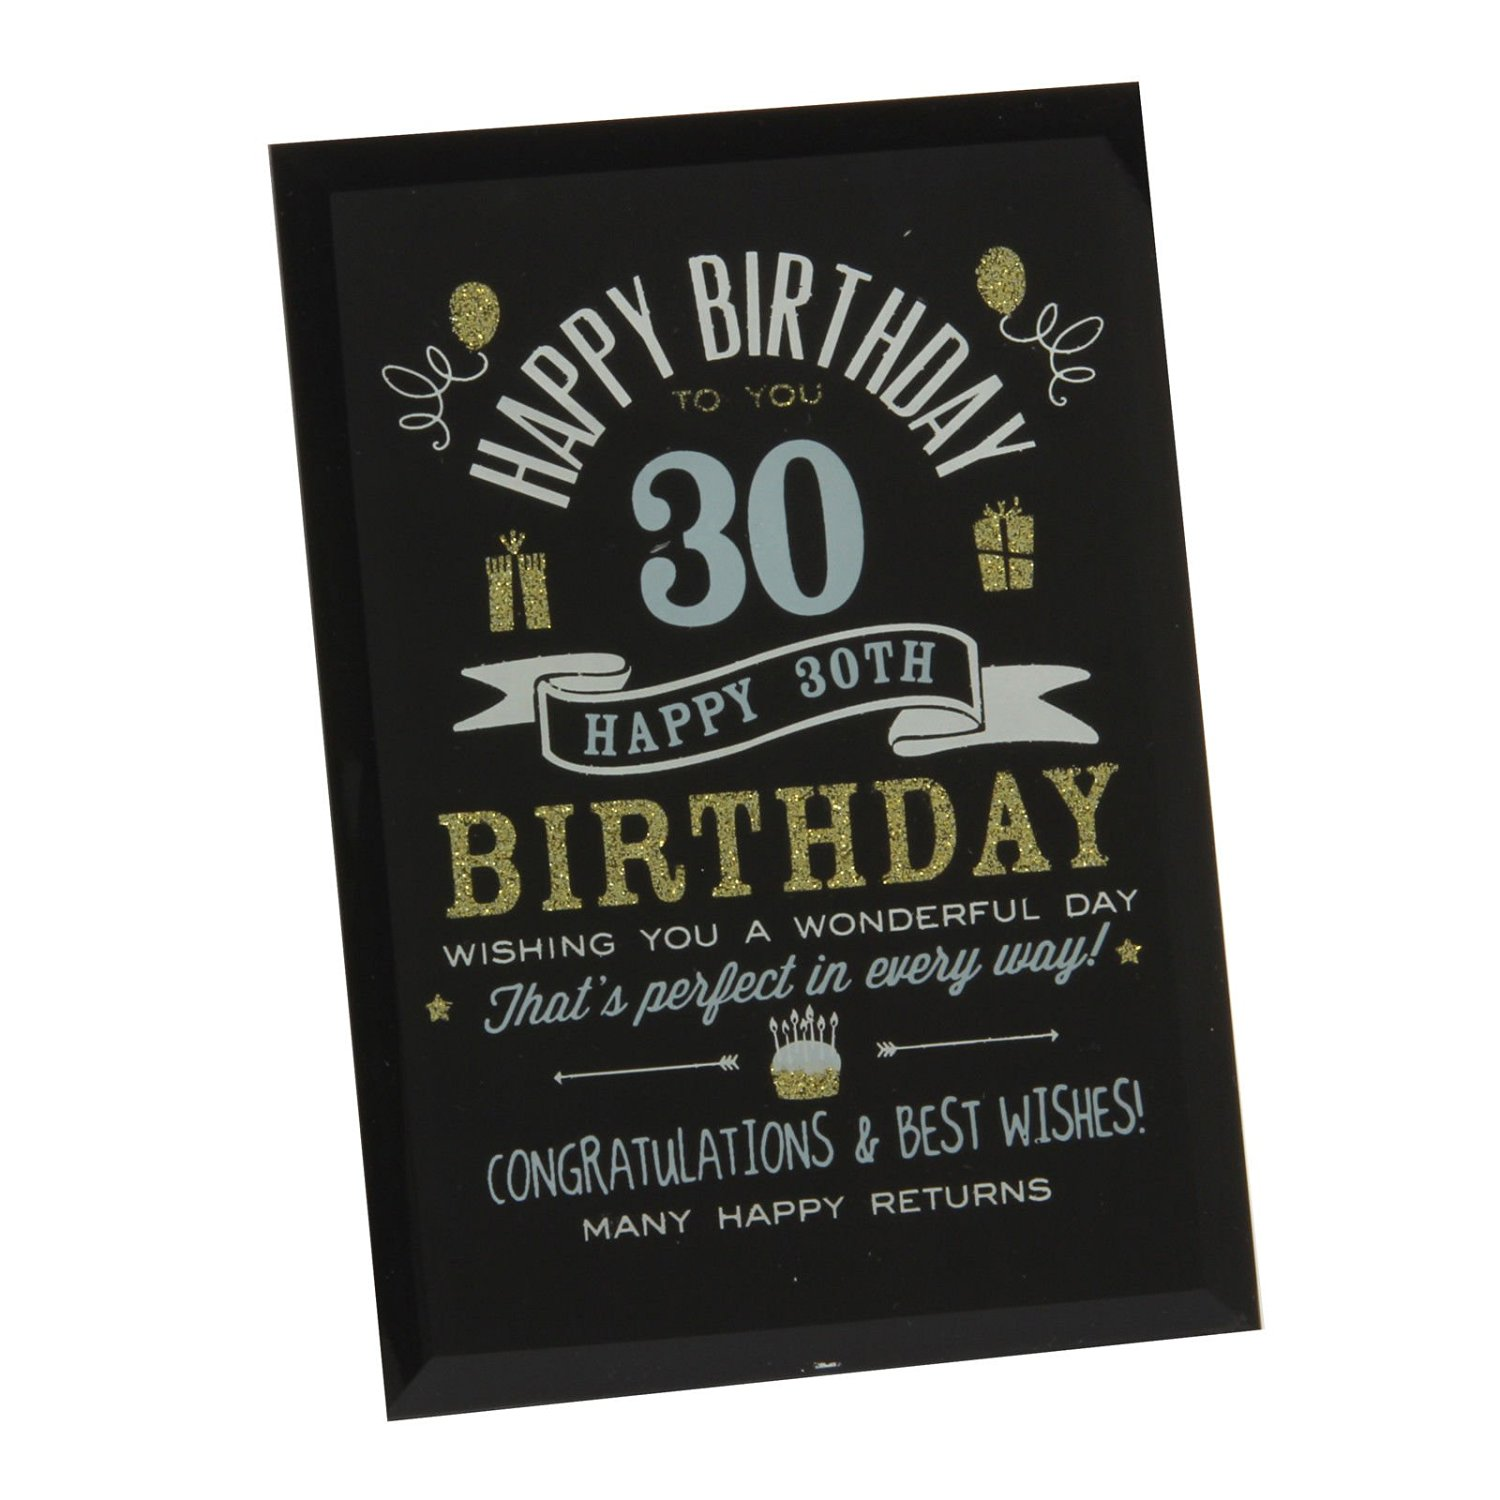 Get Quotations 30Th Birthday Gift Ideas Glass Plaque For Him Her Friends Grandparents